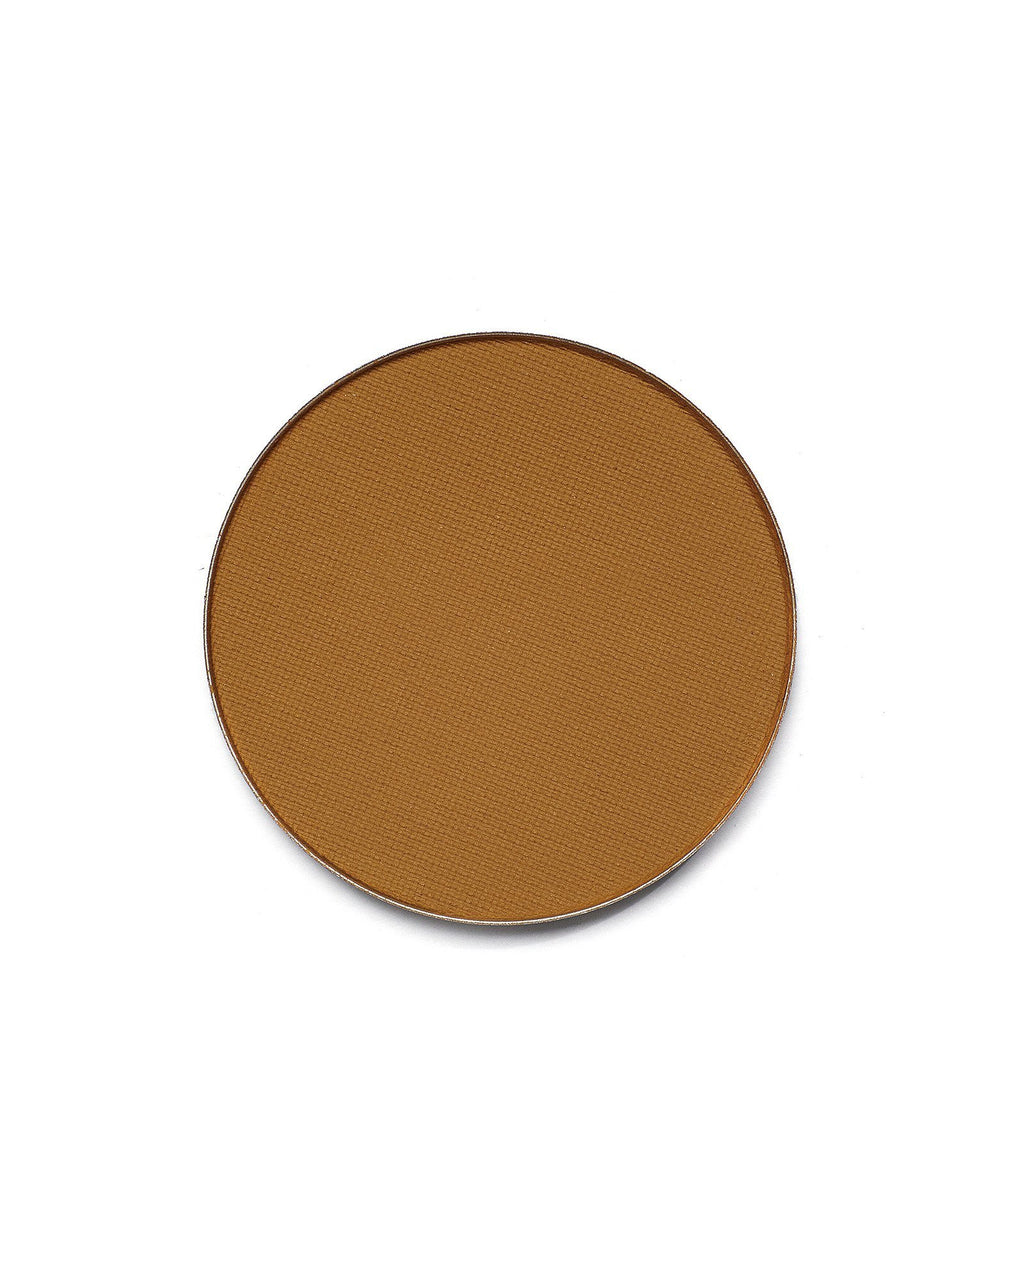 Powder - Caramel Pressed